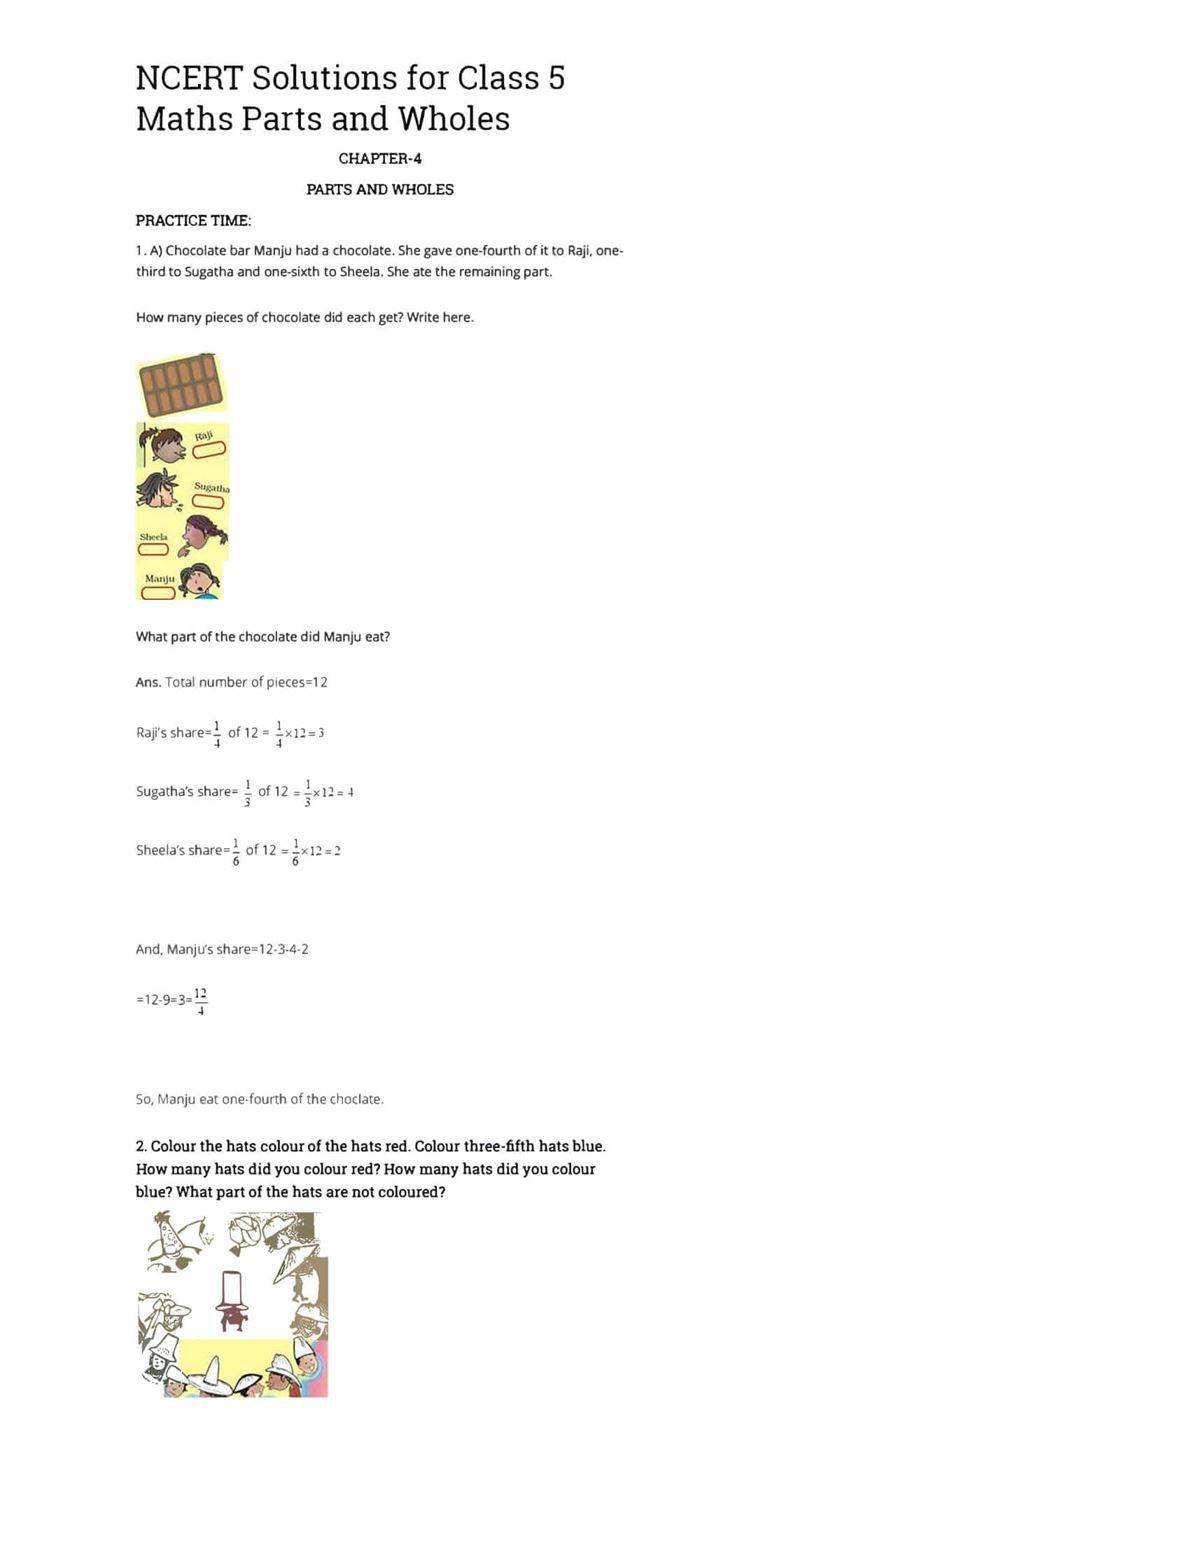 NCERT Solutions Class 5 Maths Chapter 4 Parts and Wholes - BYJU'S